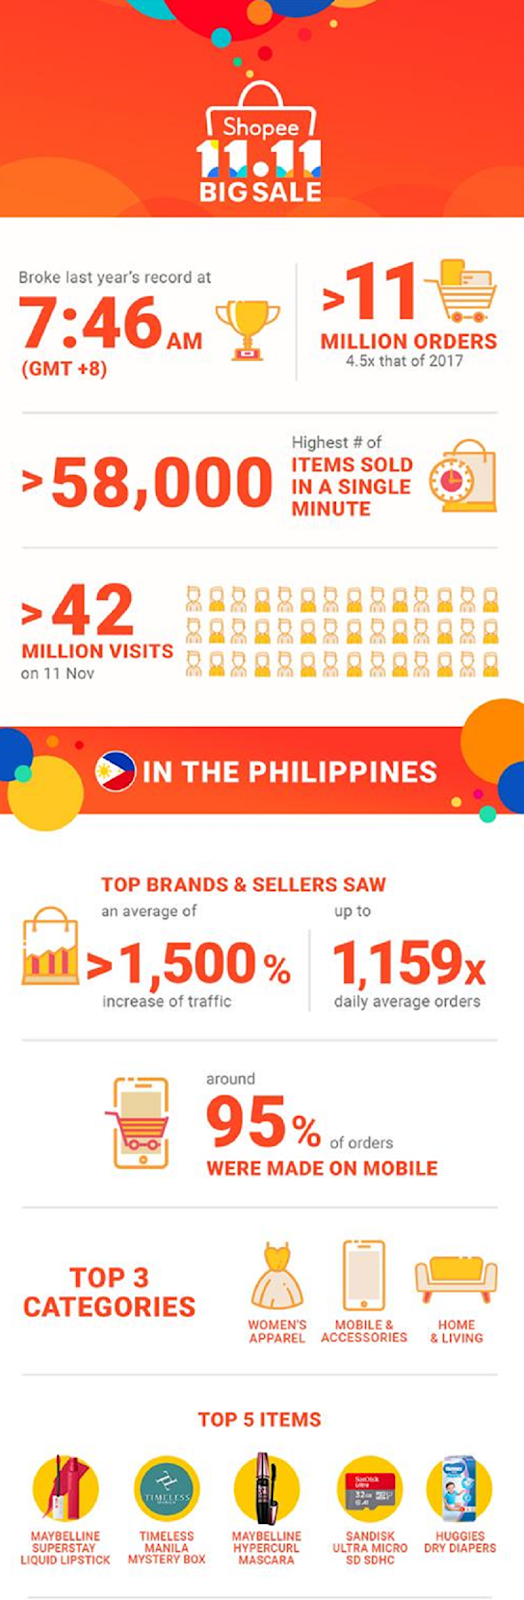 Mobile shopping leader Shopee has realized a success during the begin part of its  Shopee receives over xi 1000000 orders during its Christmas Sale!